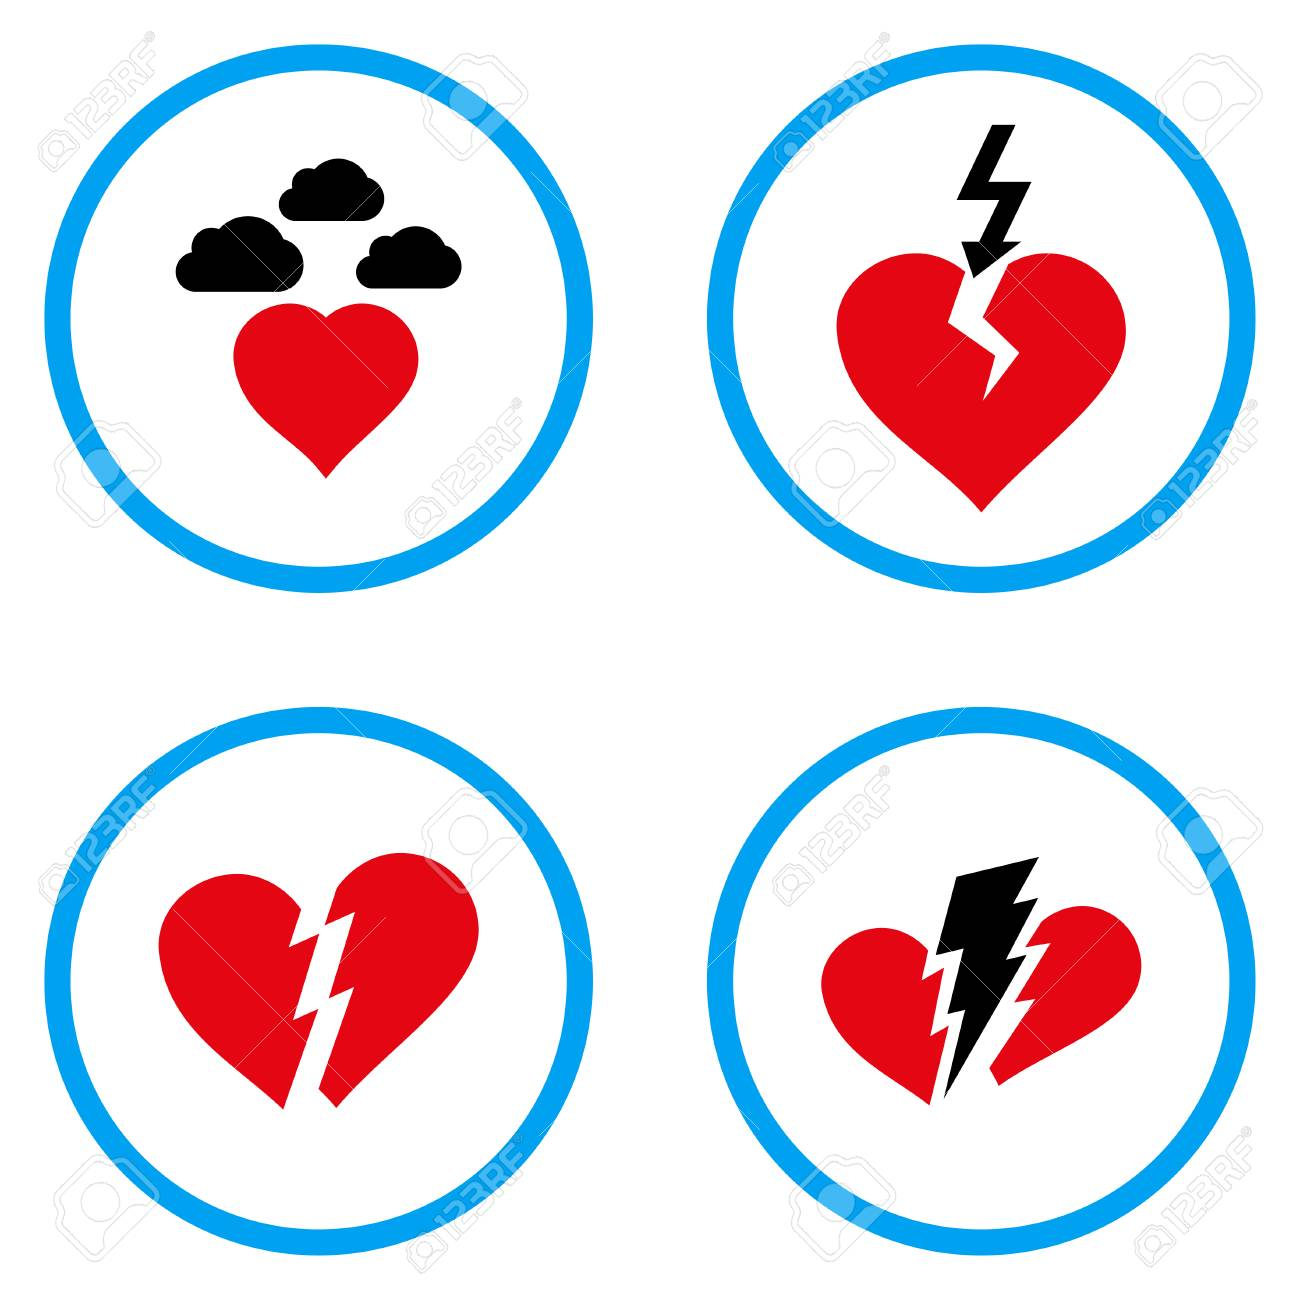 Broken Heart Rounded Icons Vector Illustration Style Is A Flat